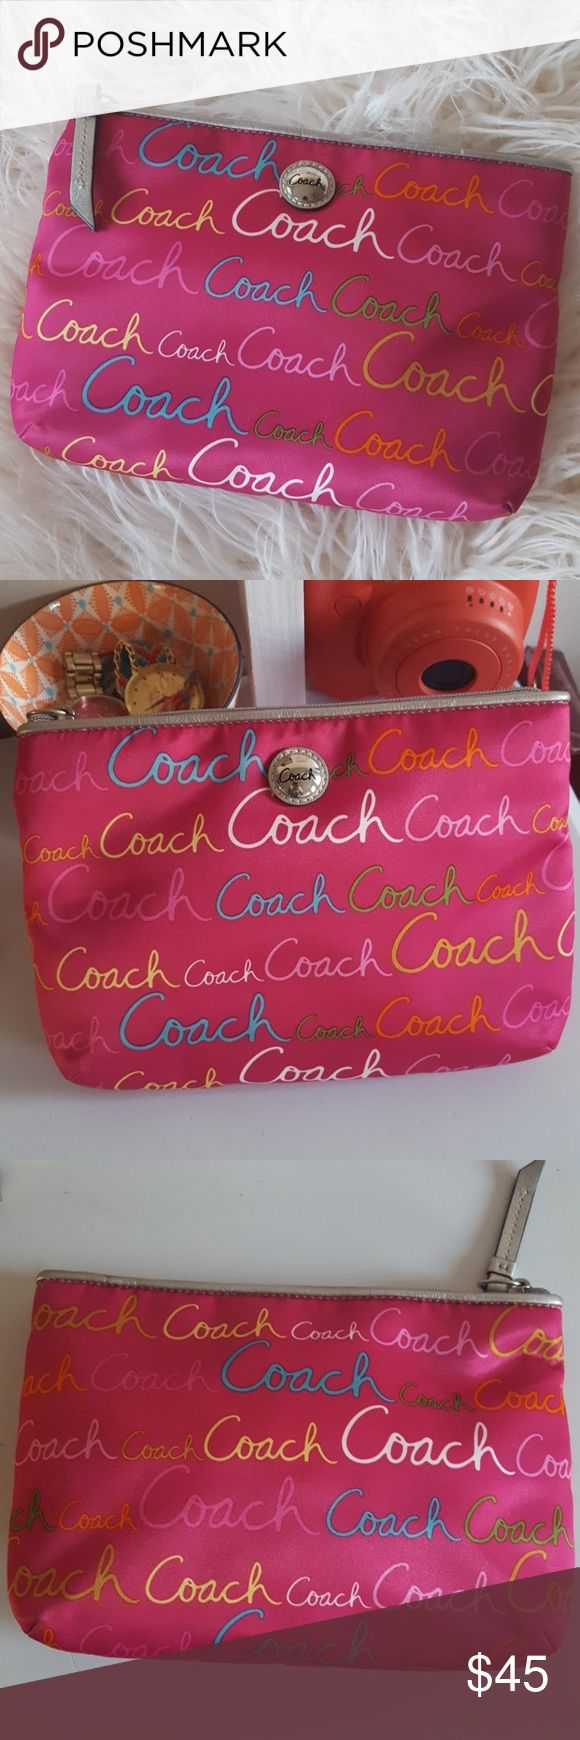 "Coach Clutch Pink and more colors Cute Coach Clutch. Never been used. Measures approx 9"" x 6"". Last two pics using flash. Coach Bags Clutches & Wristlets"